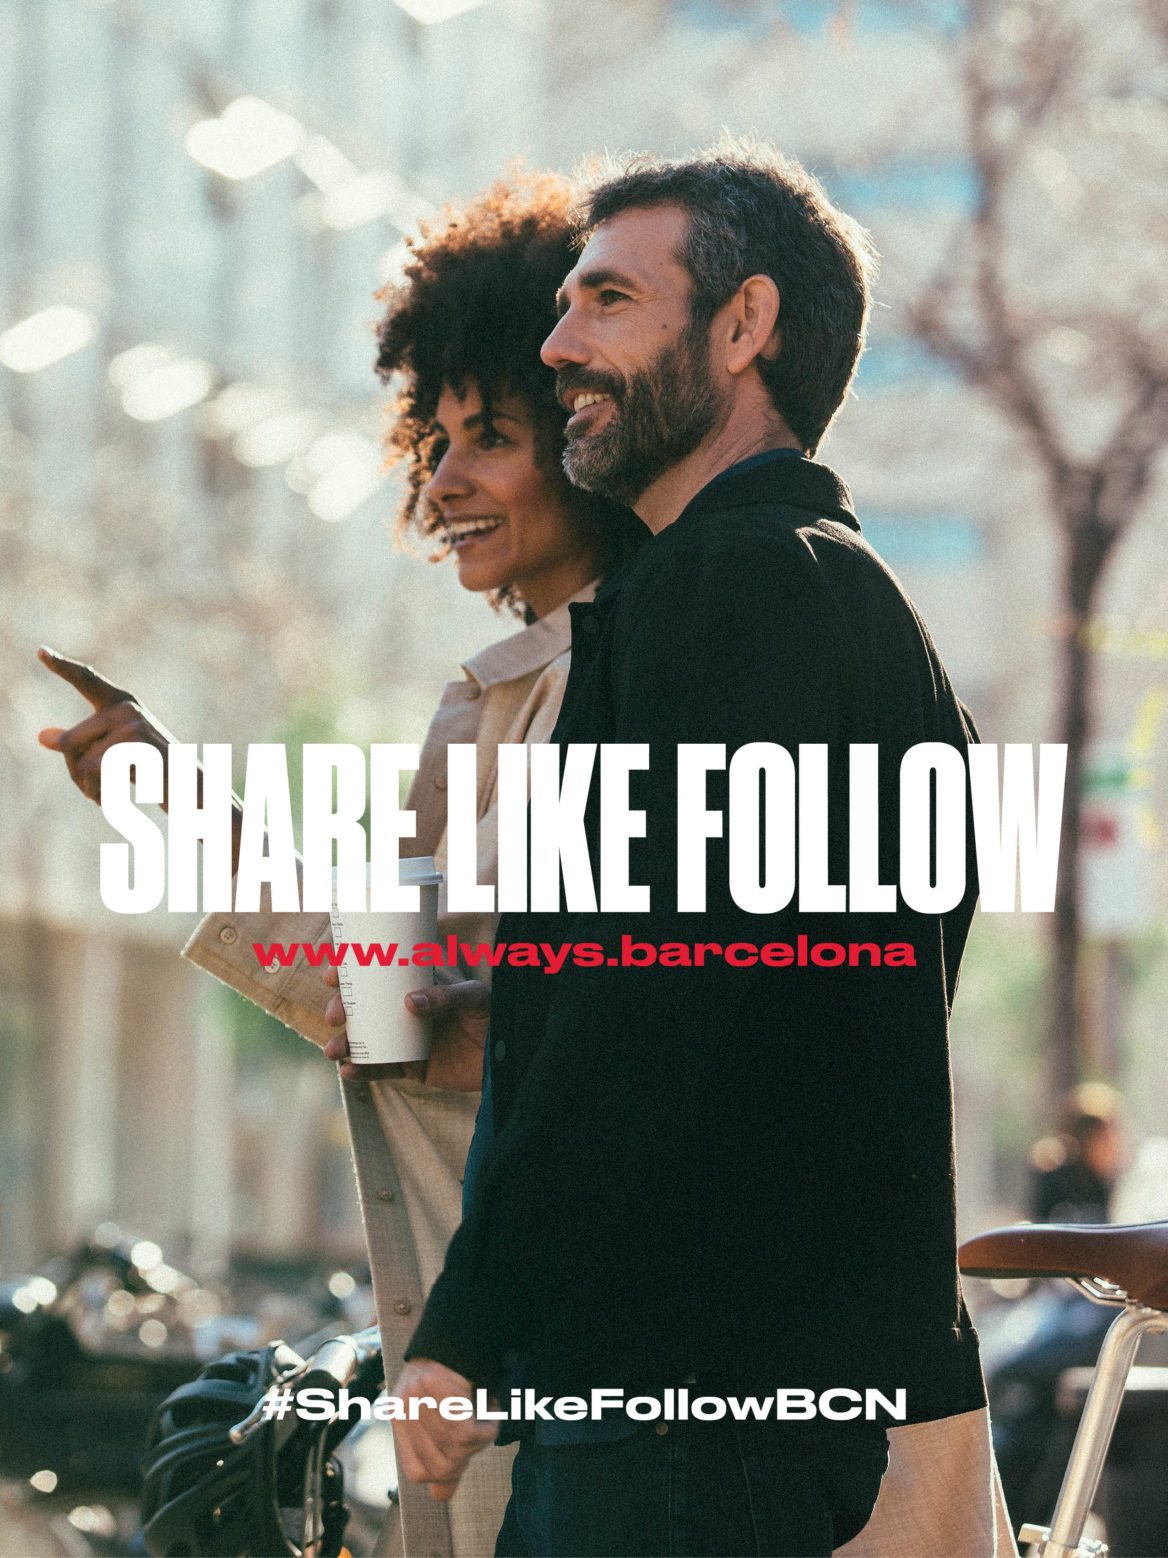 FOLCH - The Reputation Campaign #ShareLikeFollowBCN